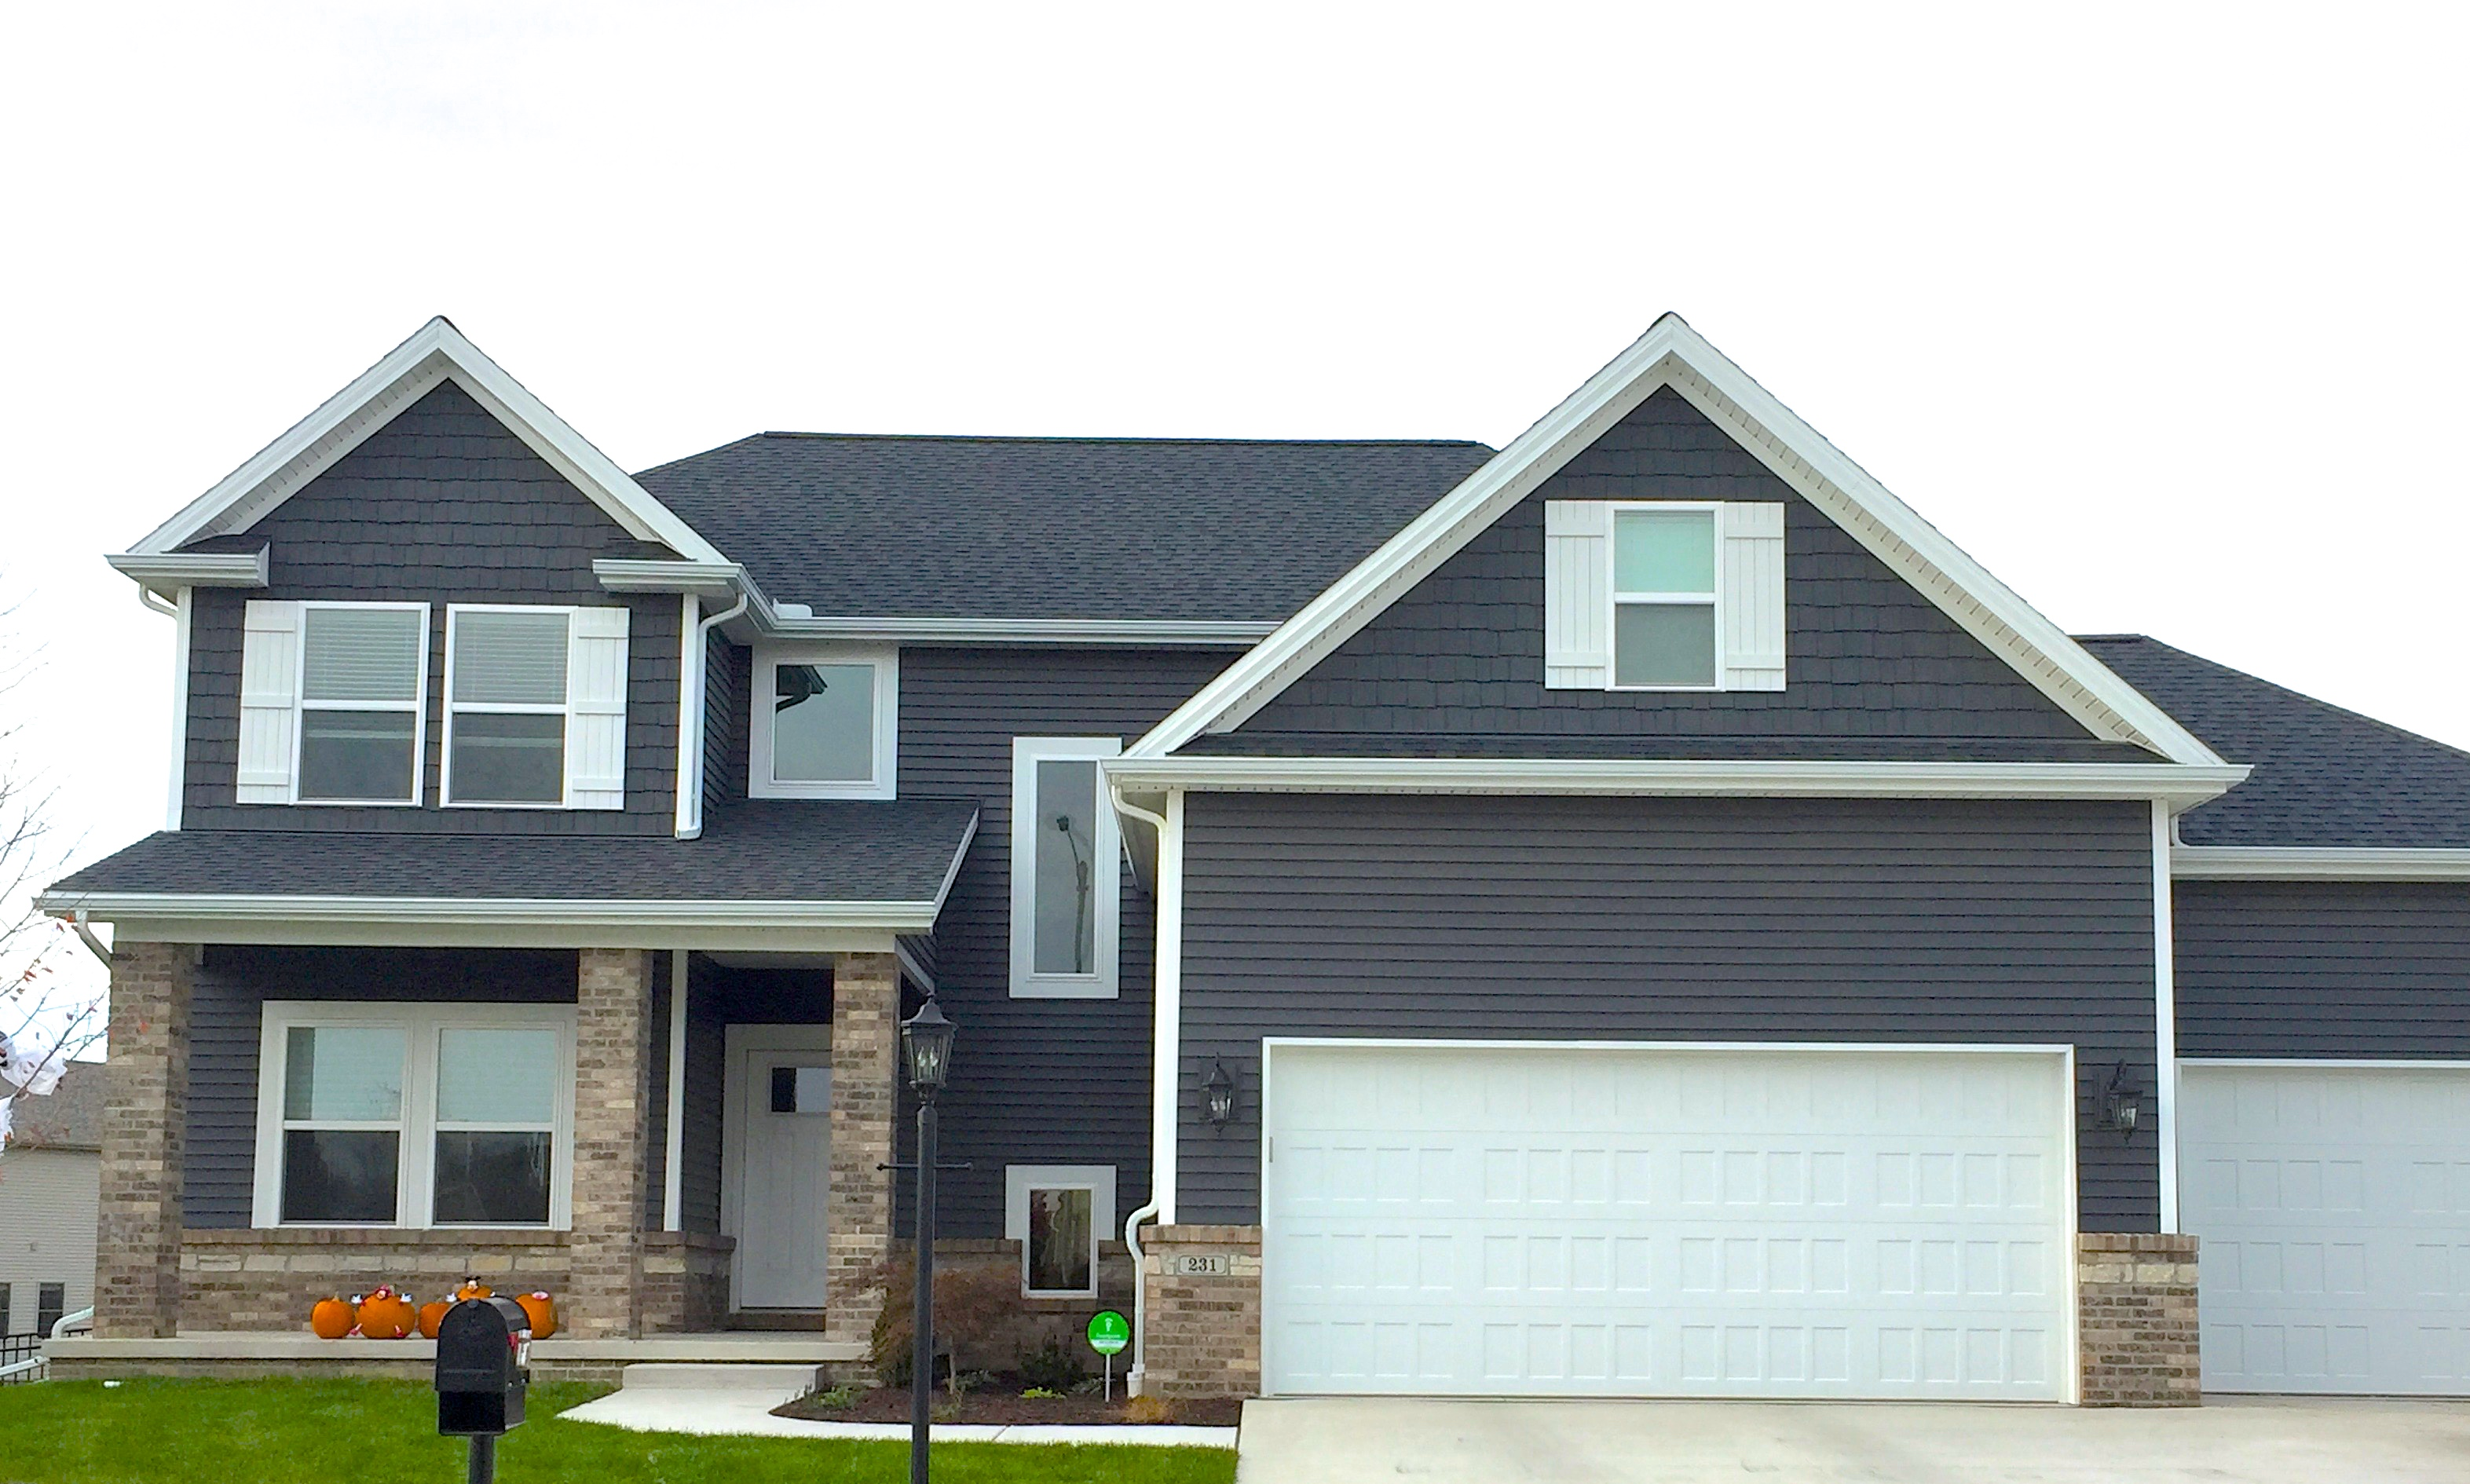 Royal ironstone dark grey siding white trim white shutters certainteed moire black roof morton - Black house with white trim ...